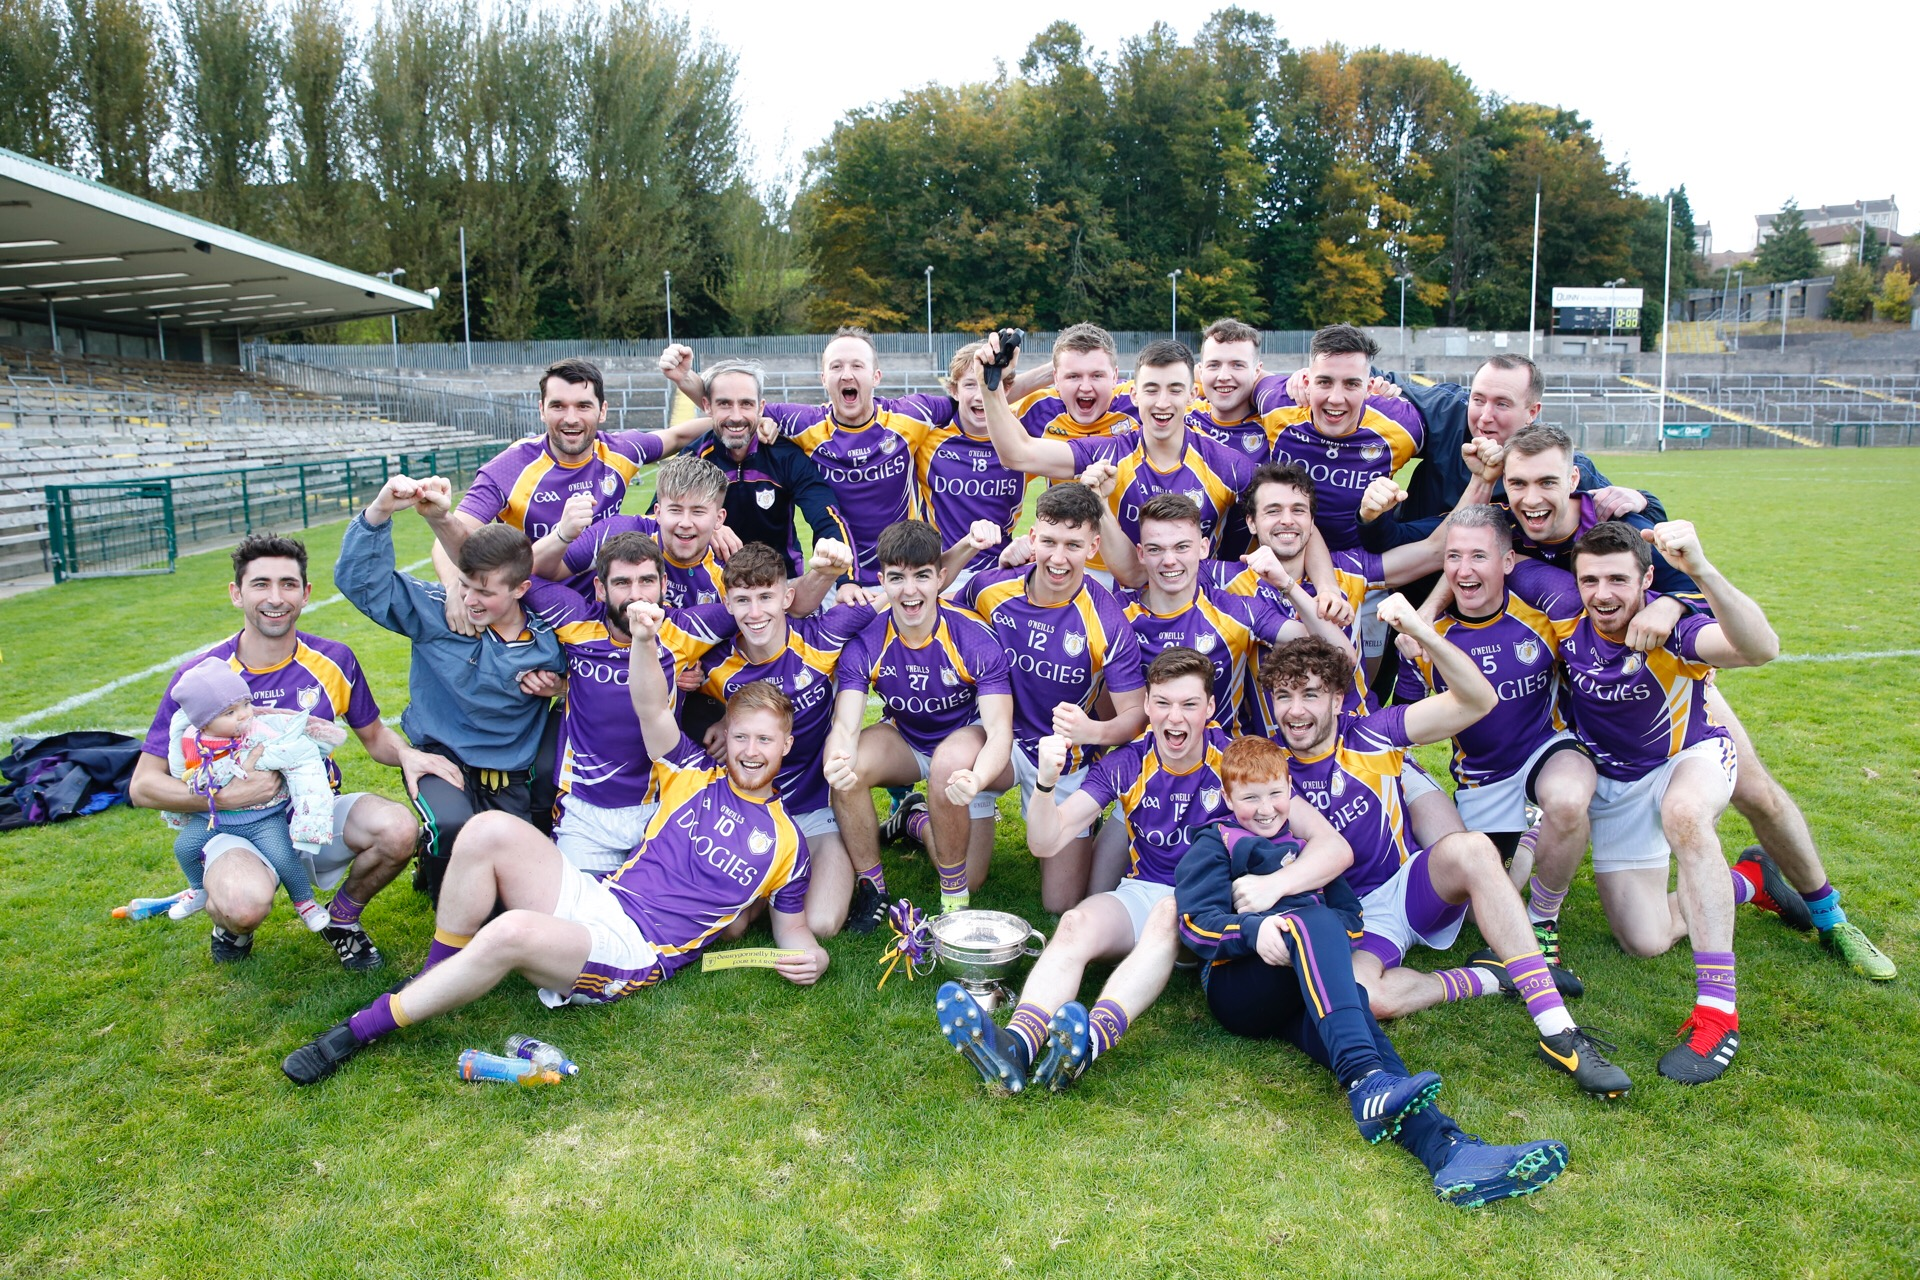 The Derrygonnelly players celebrate their win over Ederney today at Brewster Park.